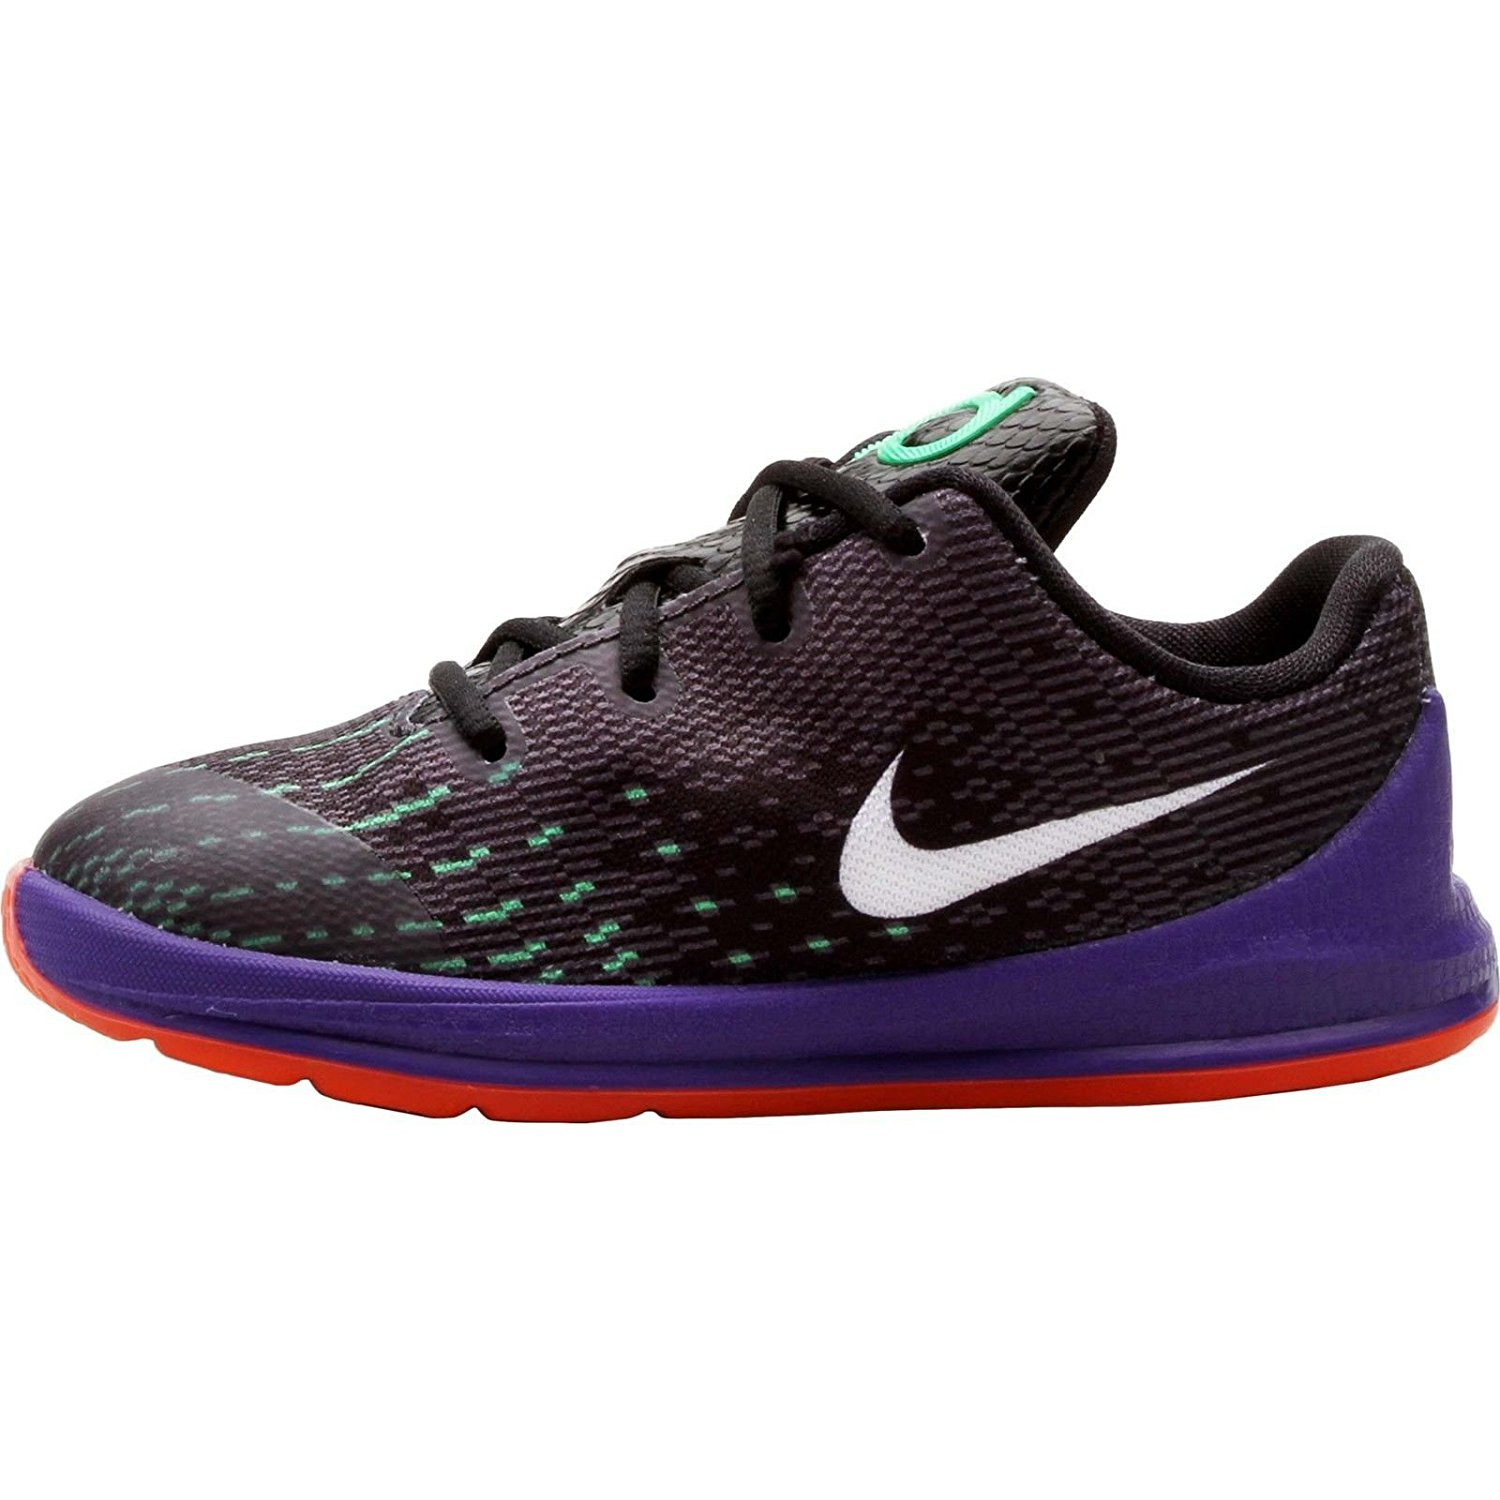 84cc2601121b Get Quotations · Nike KD 8 Preschool Boys Shoe Black Green Shock Hyper  Orange White 5C